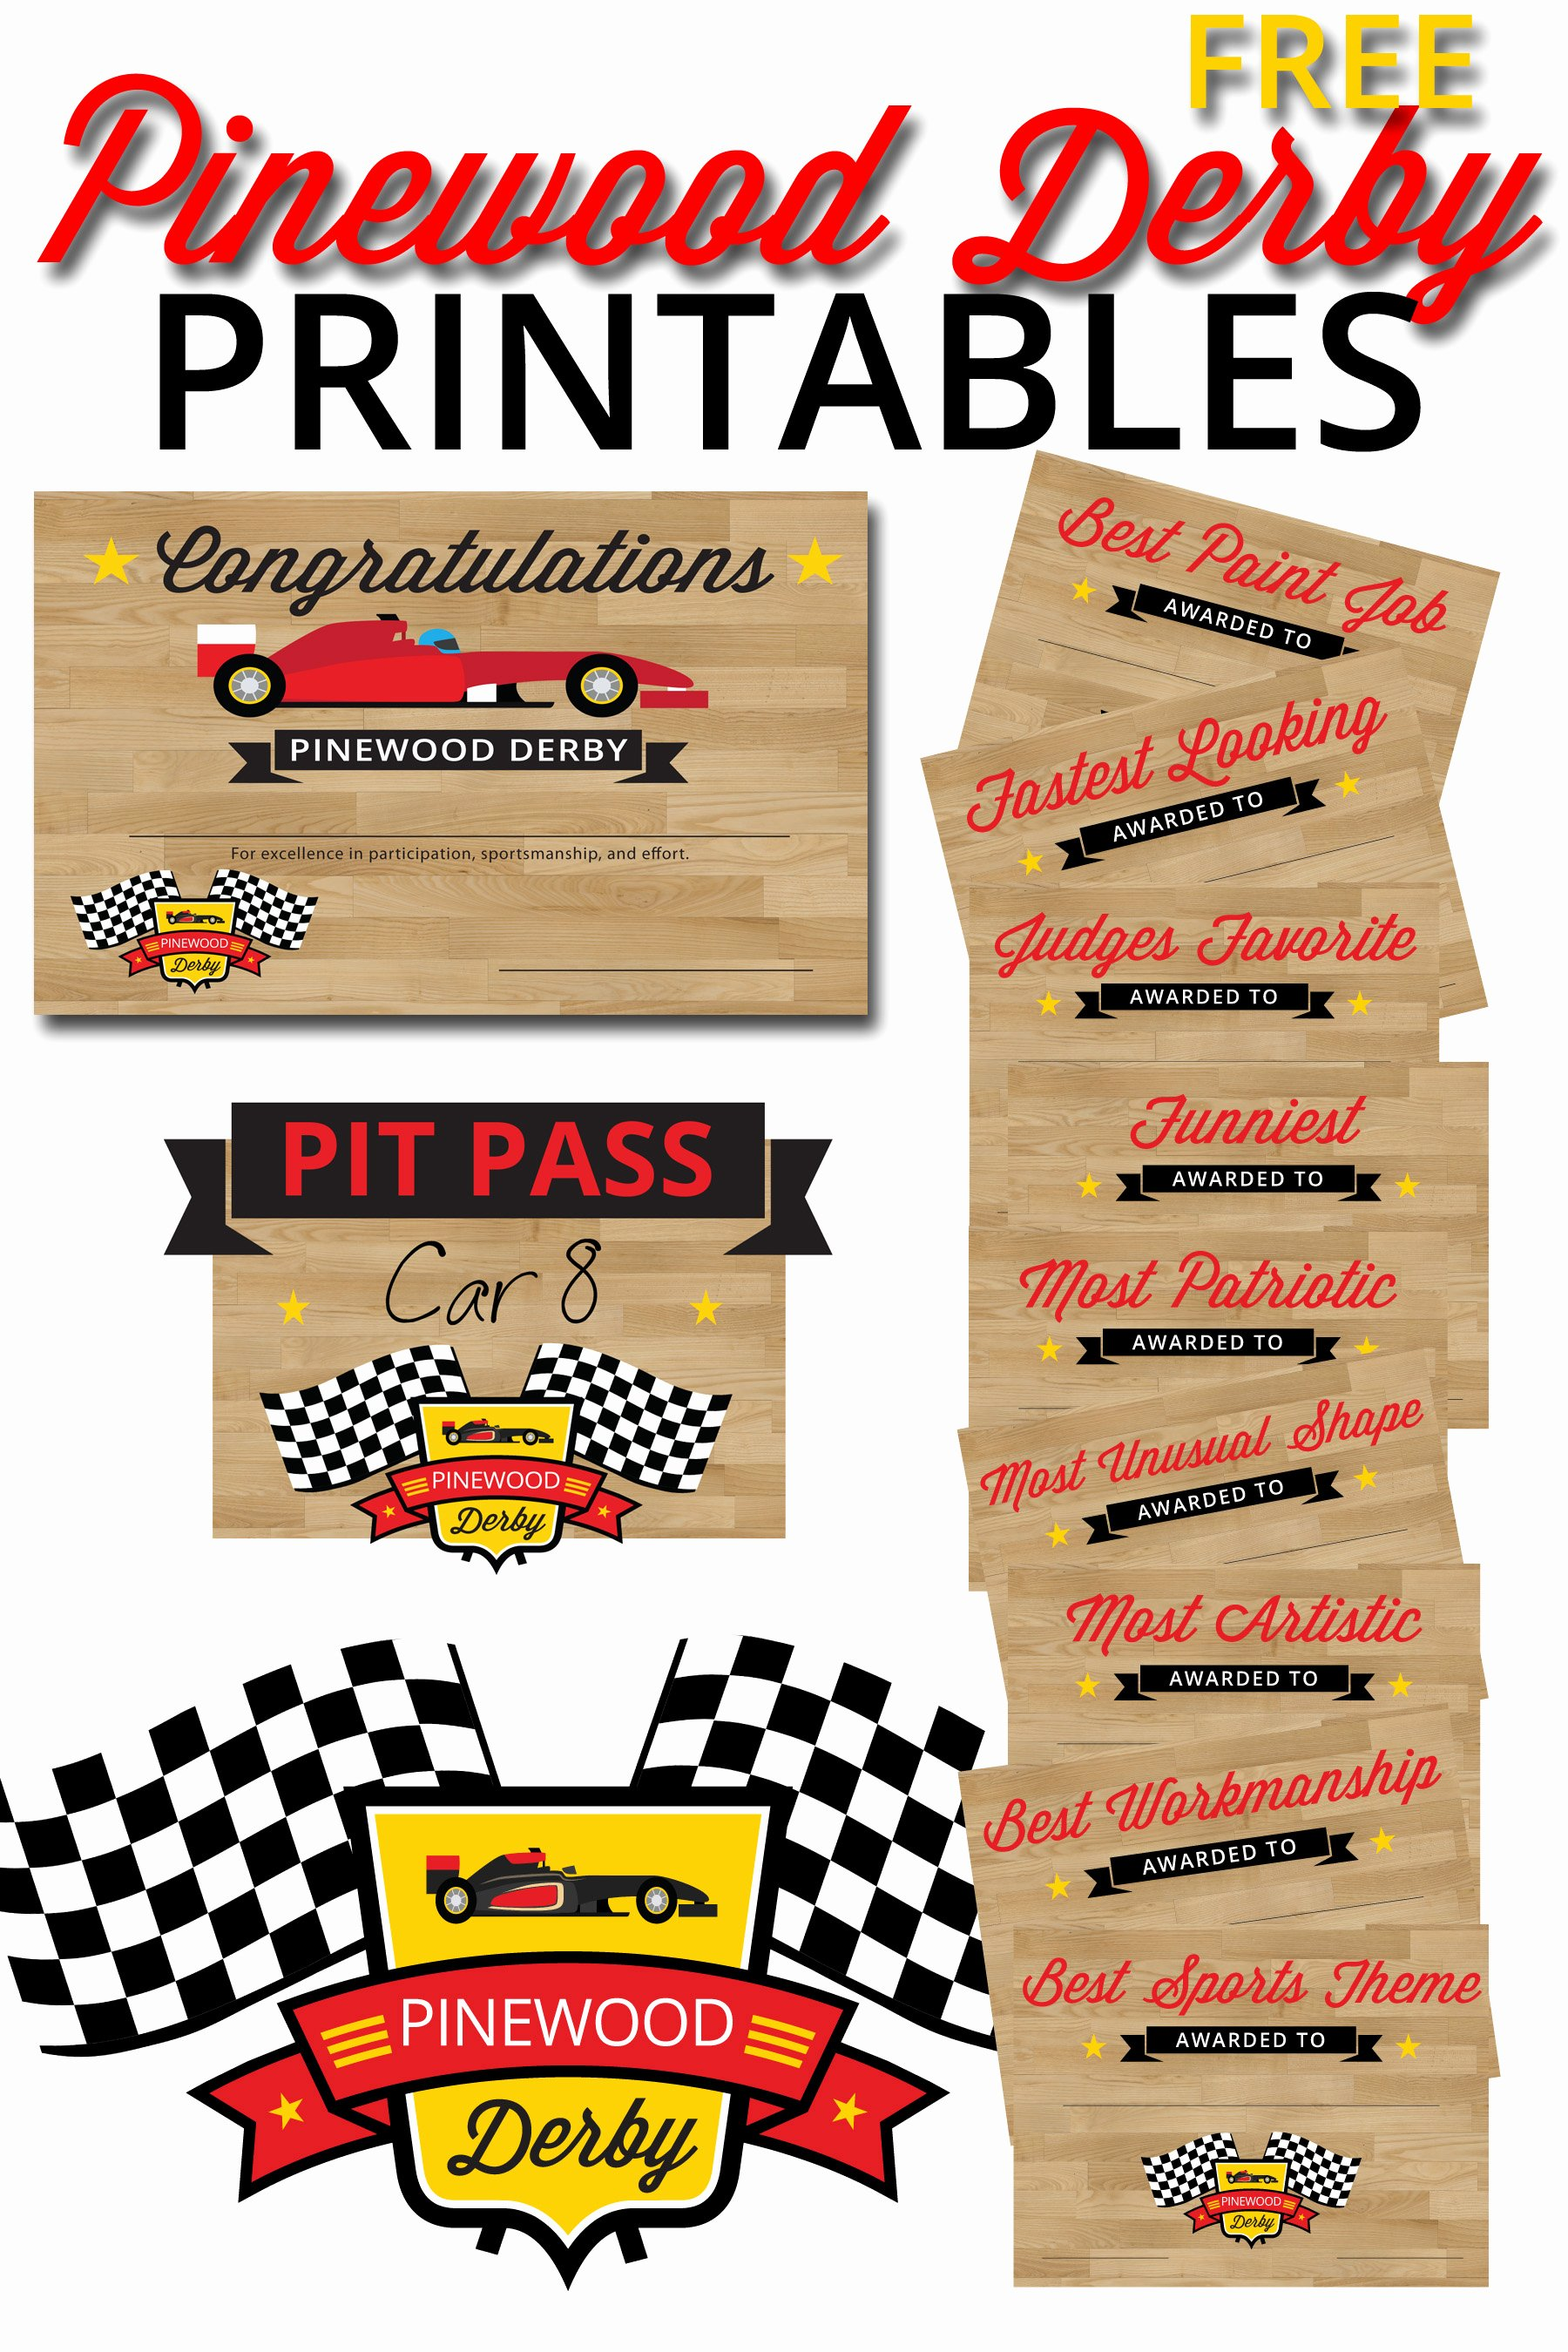 Pinewood Derby Flyer Template Fresh Pinewood Derby Printables – the Gospel Home